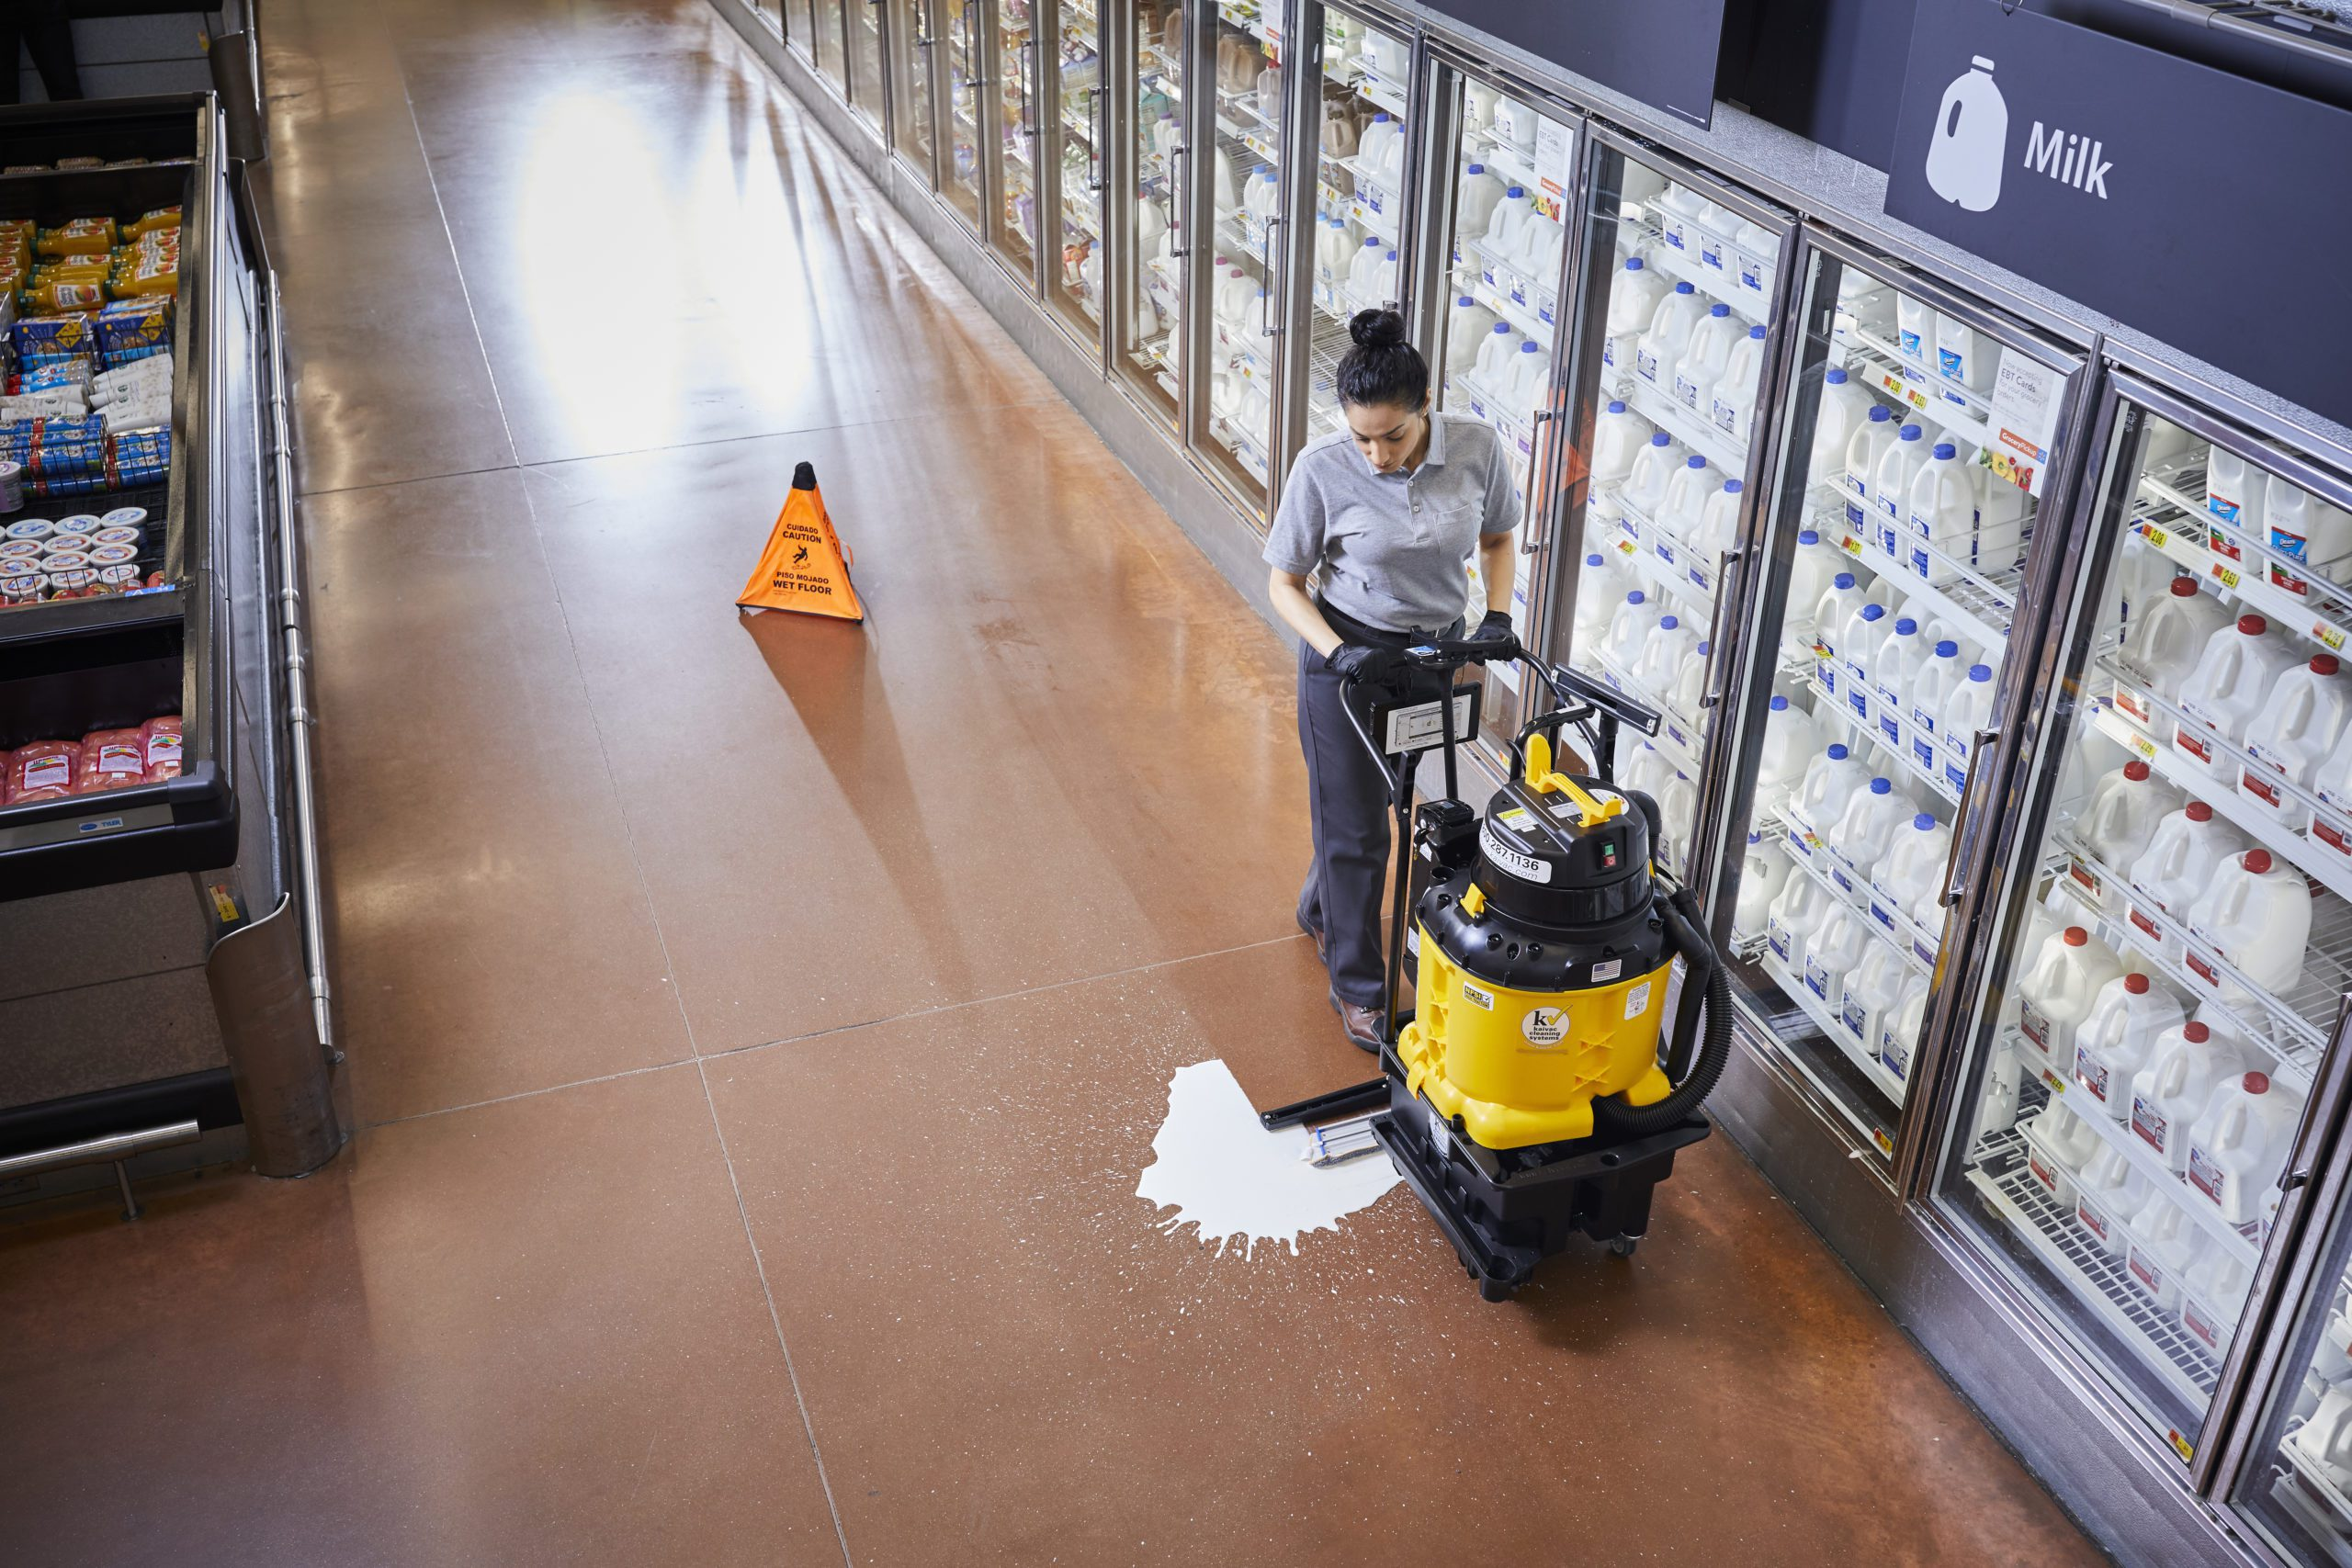 cleaning spills from grocery store floors